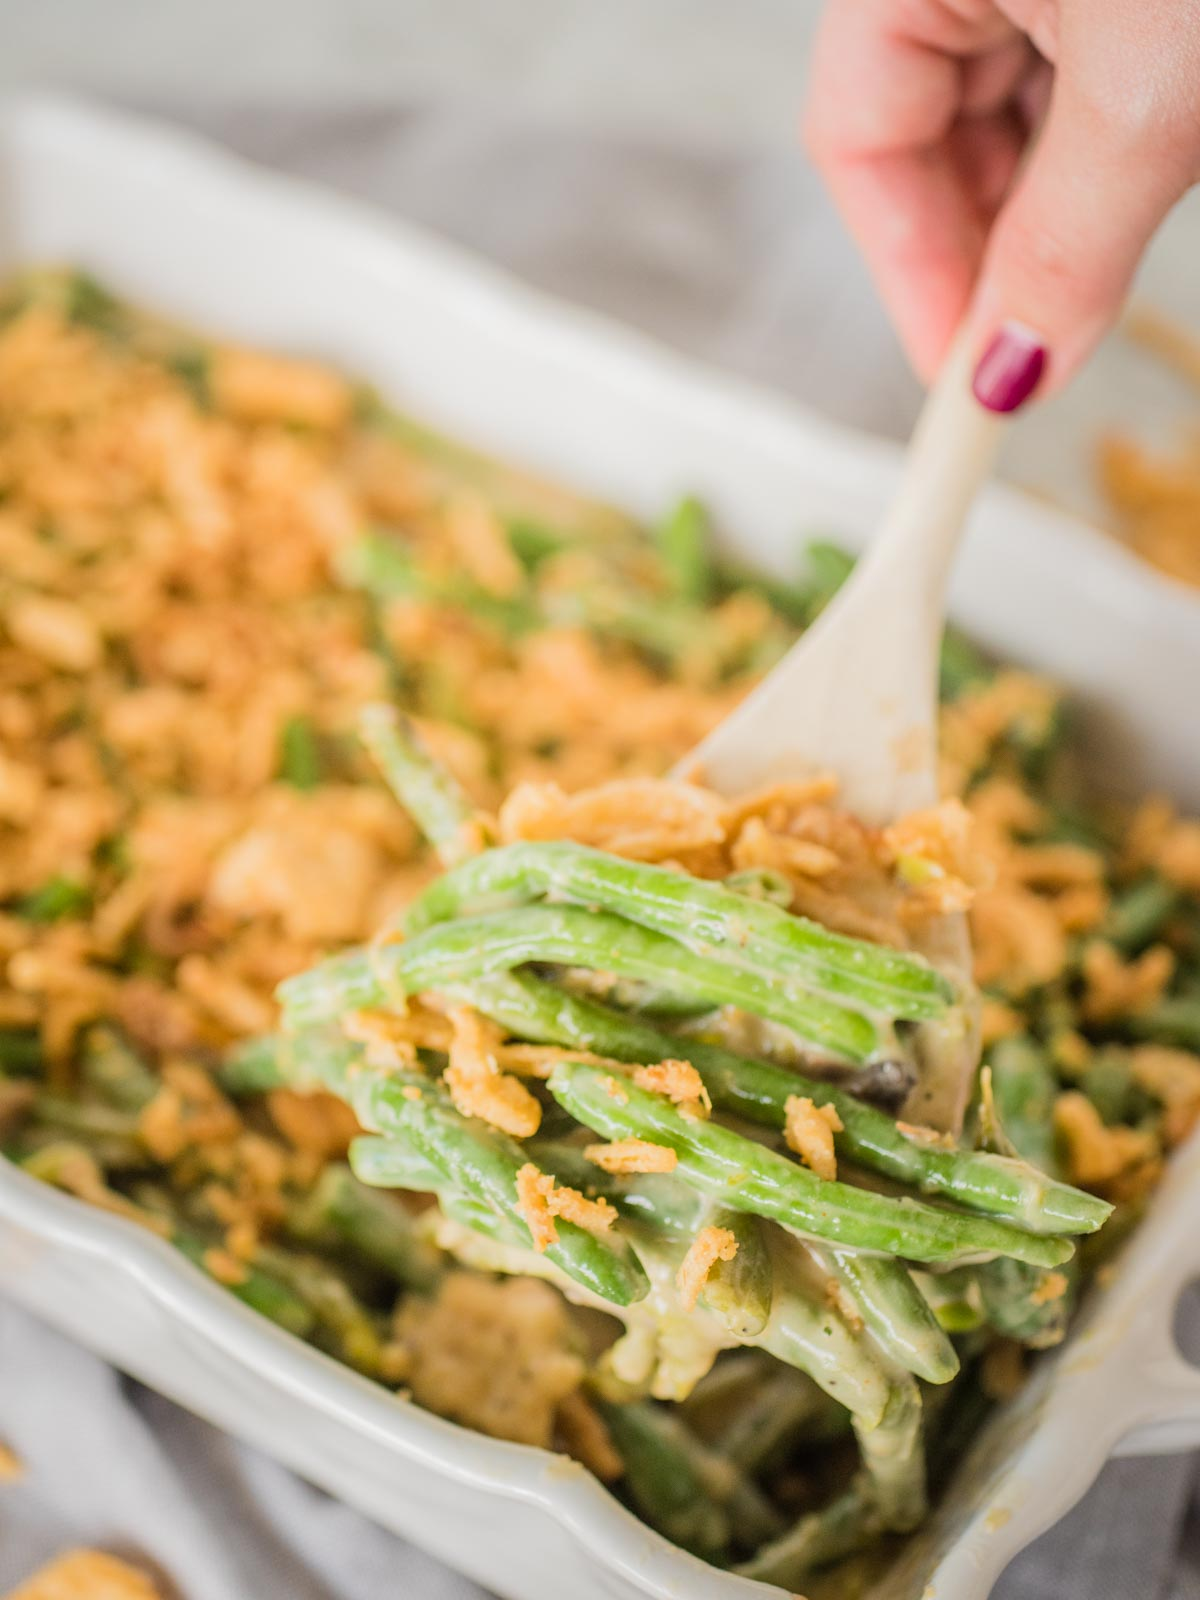 green bean casserole being scooped out of casserole dish